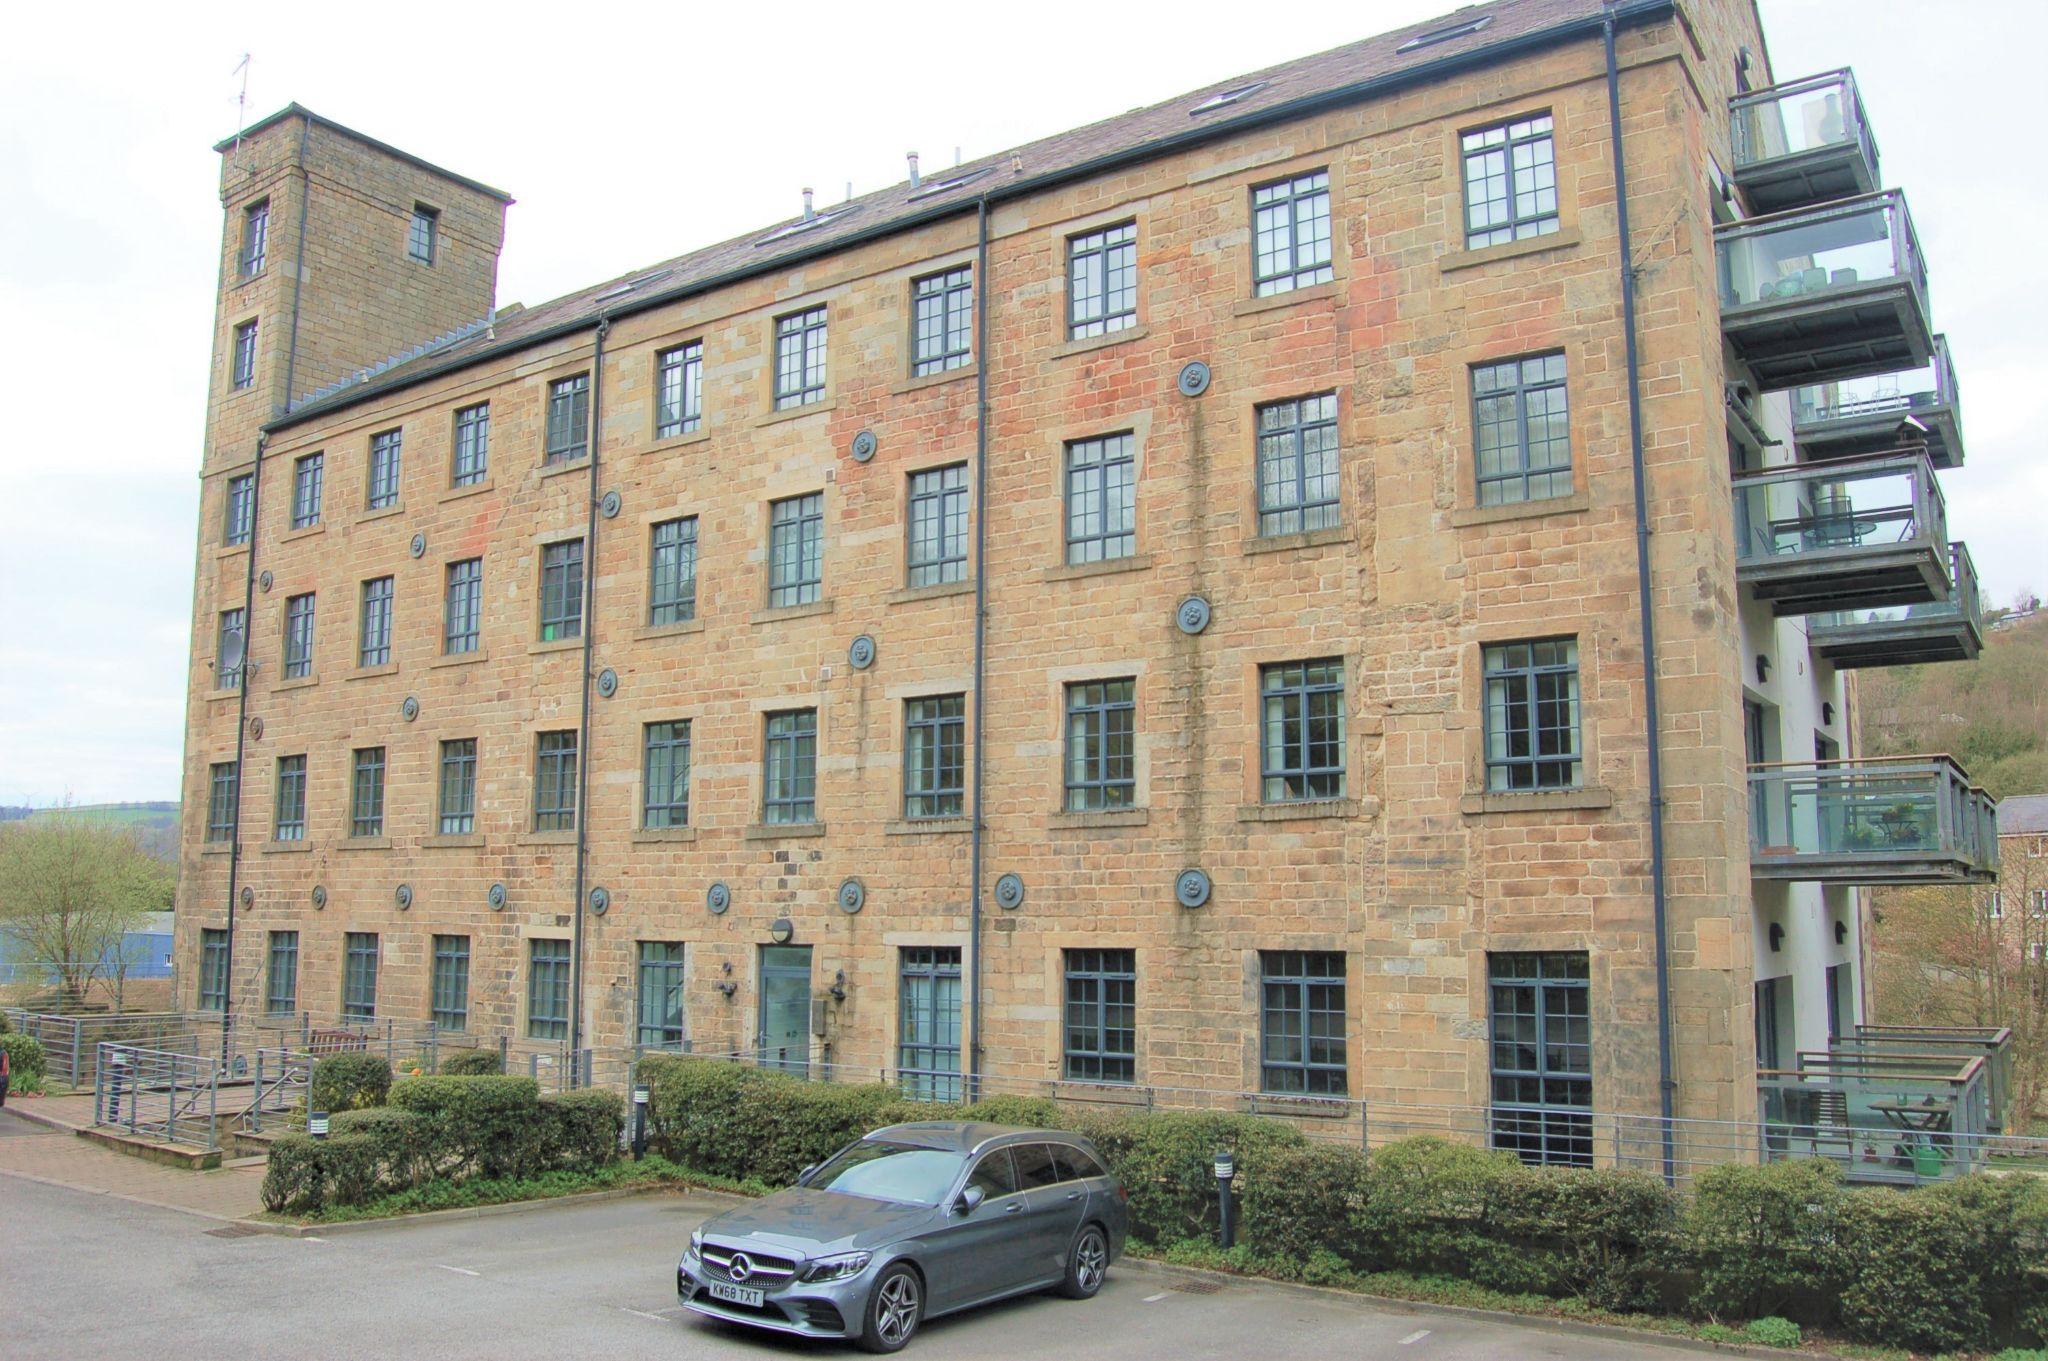 2 bedroom apartment flat/apartment Let Agreed in Todmorden - Property photograph